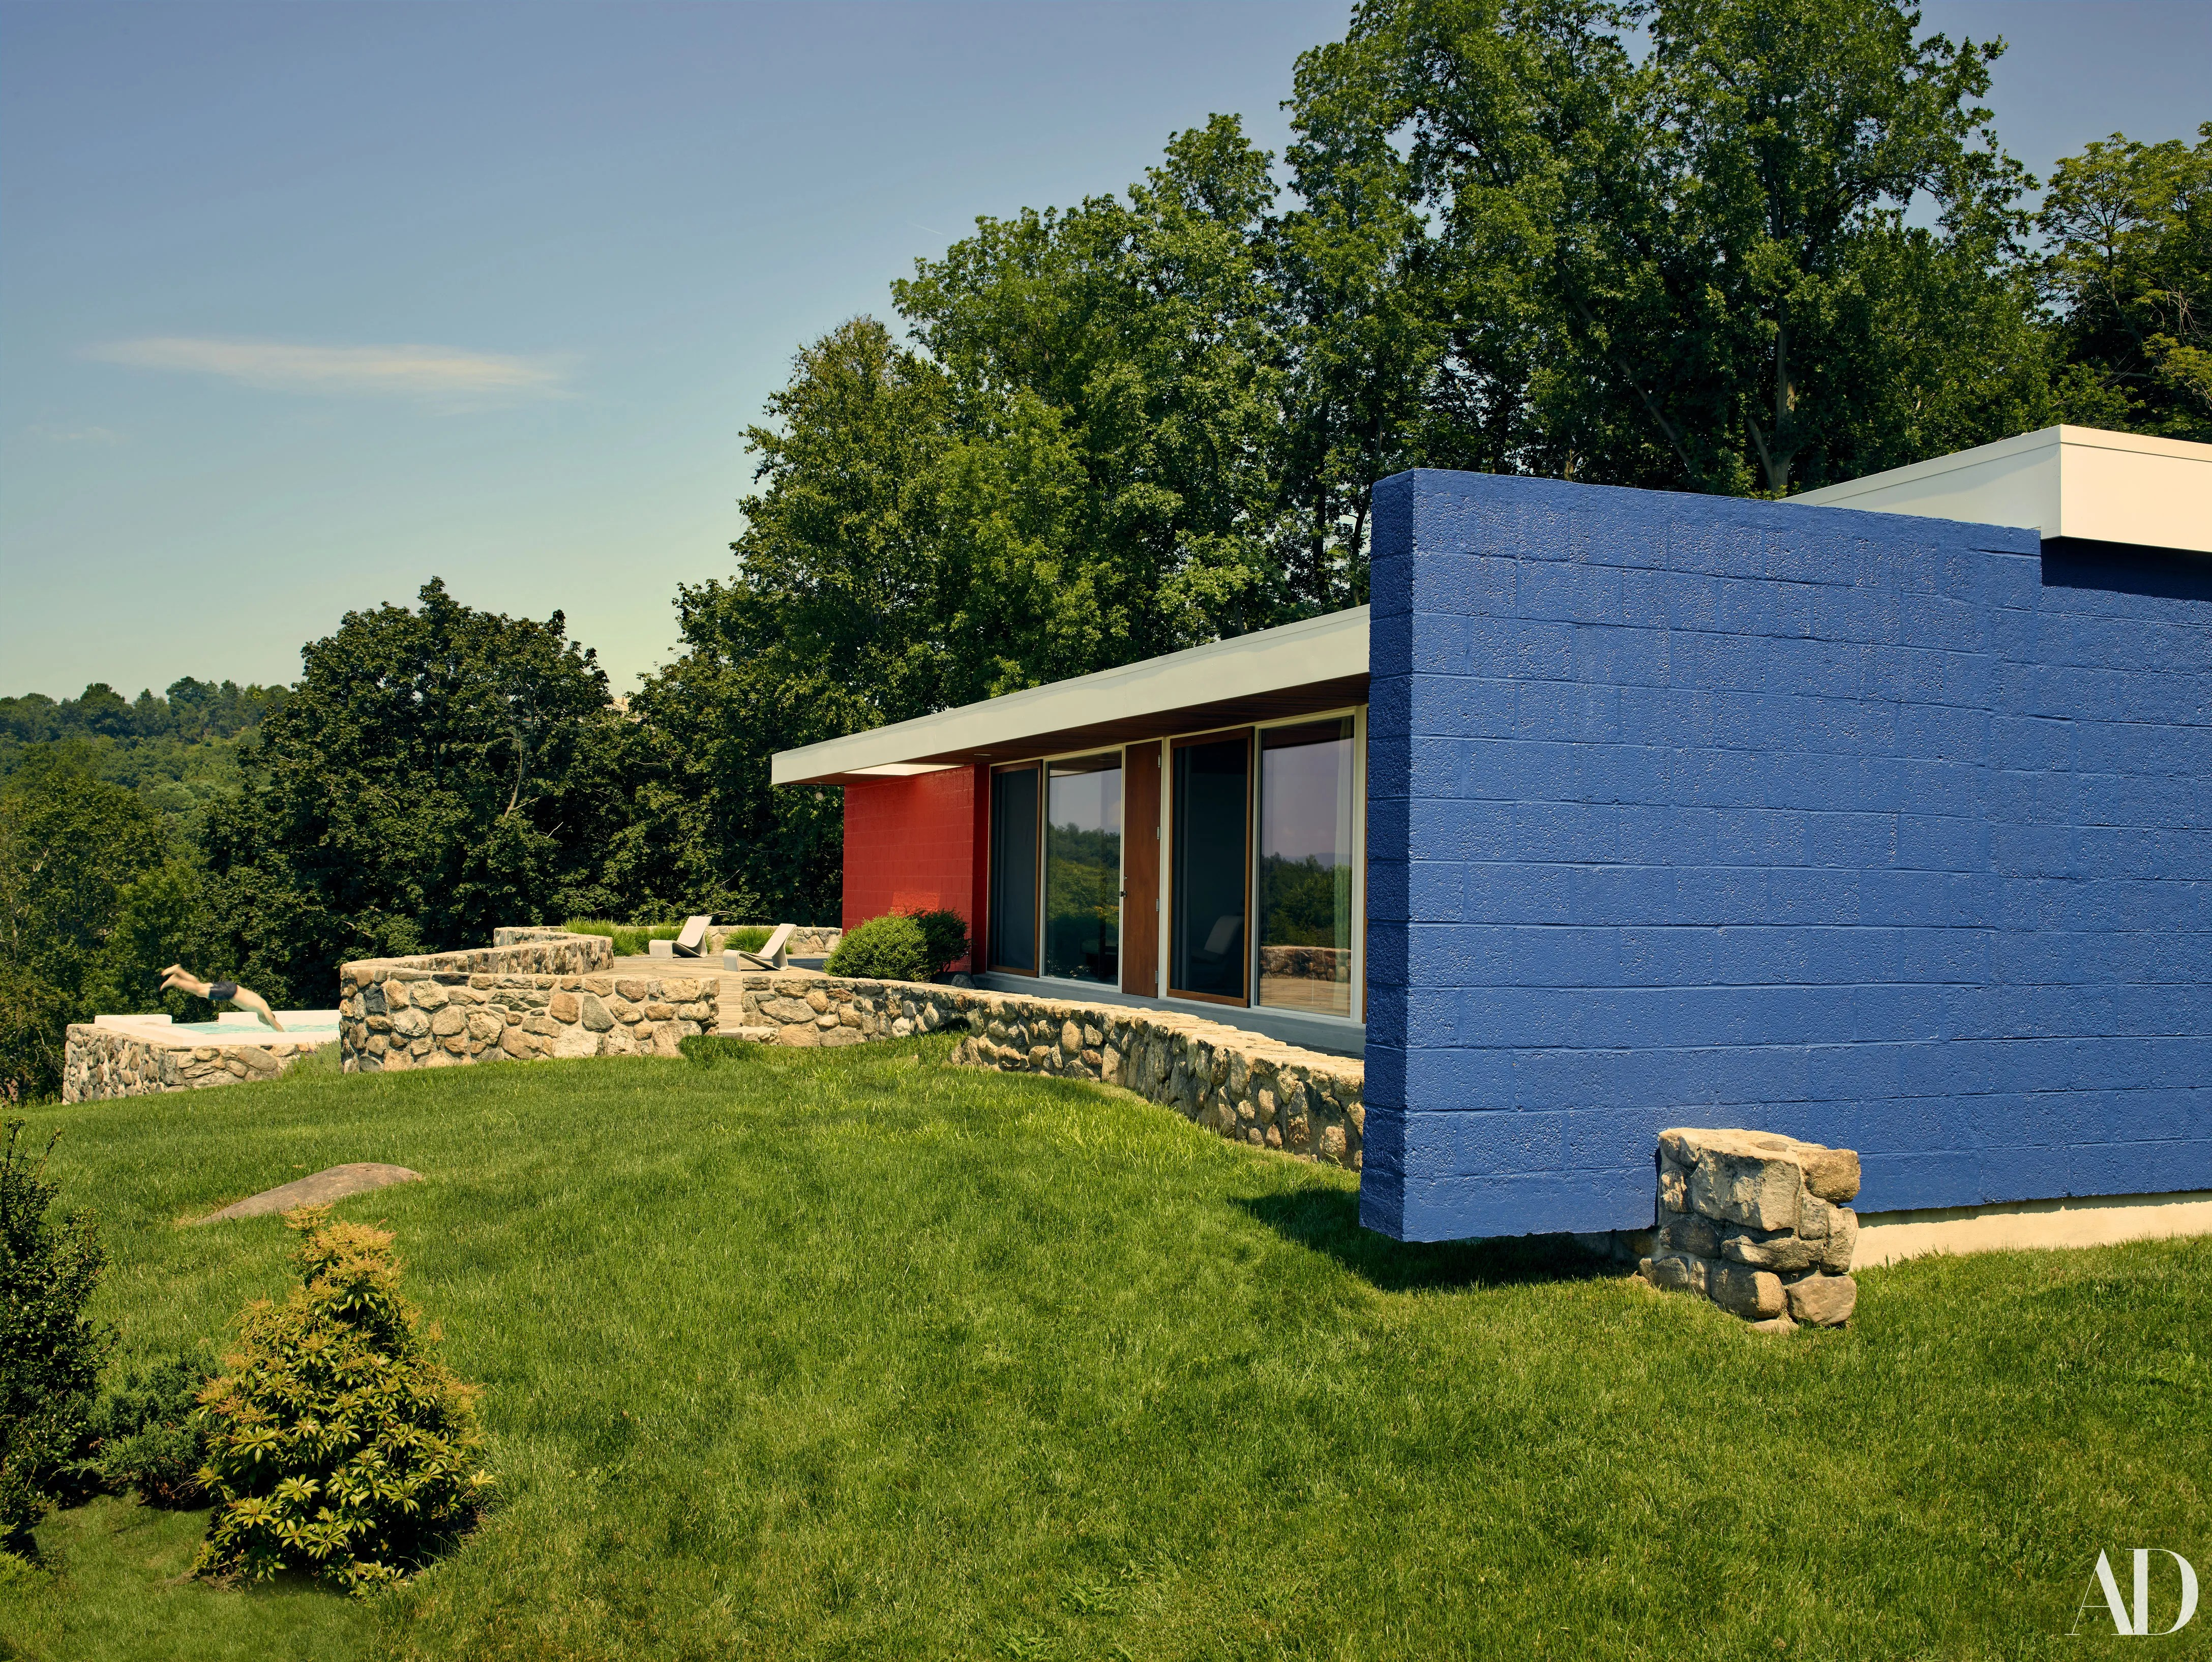 Marcel Breuer A Marcel Breuer House On The Hudson Is Restored To Modern Magic | Architectural Digest